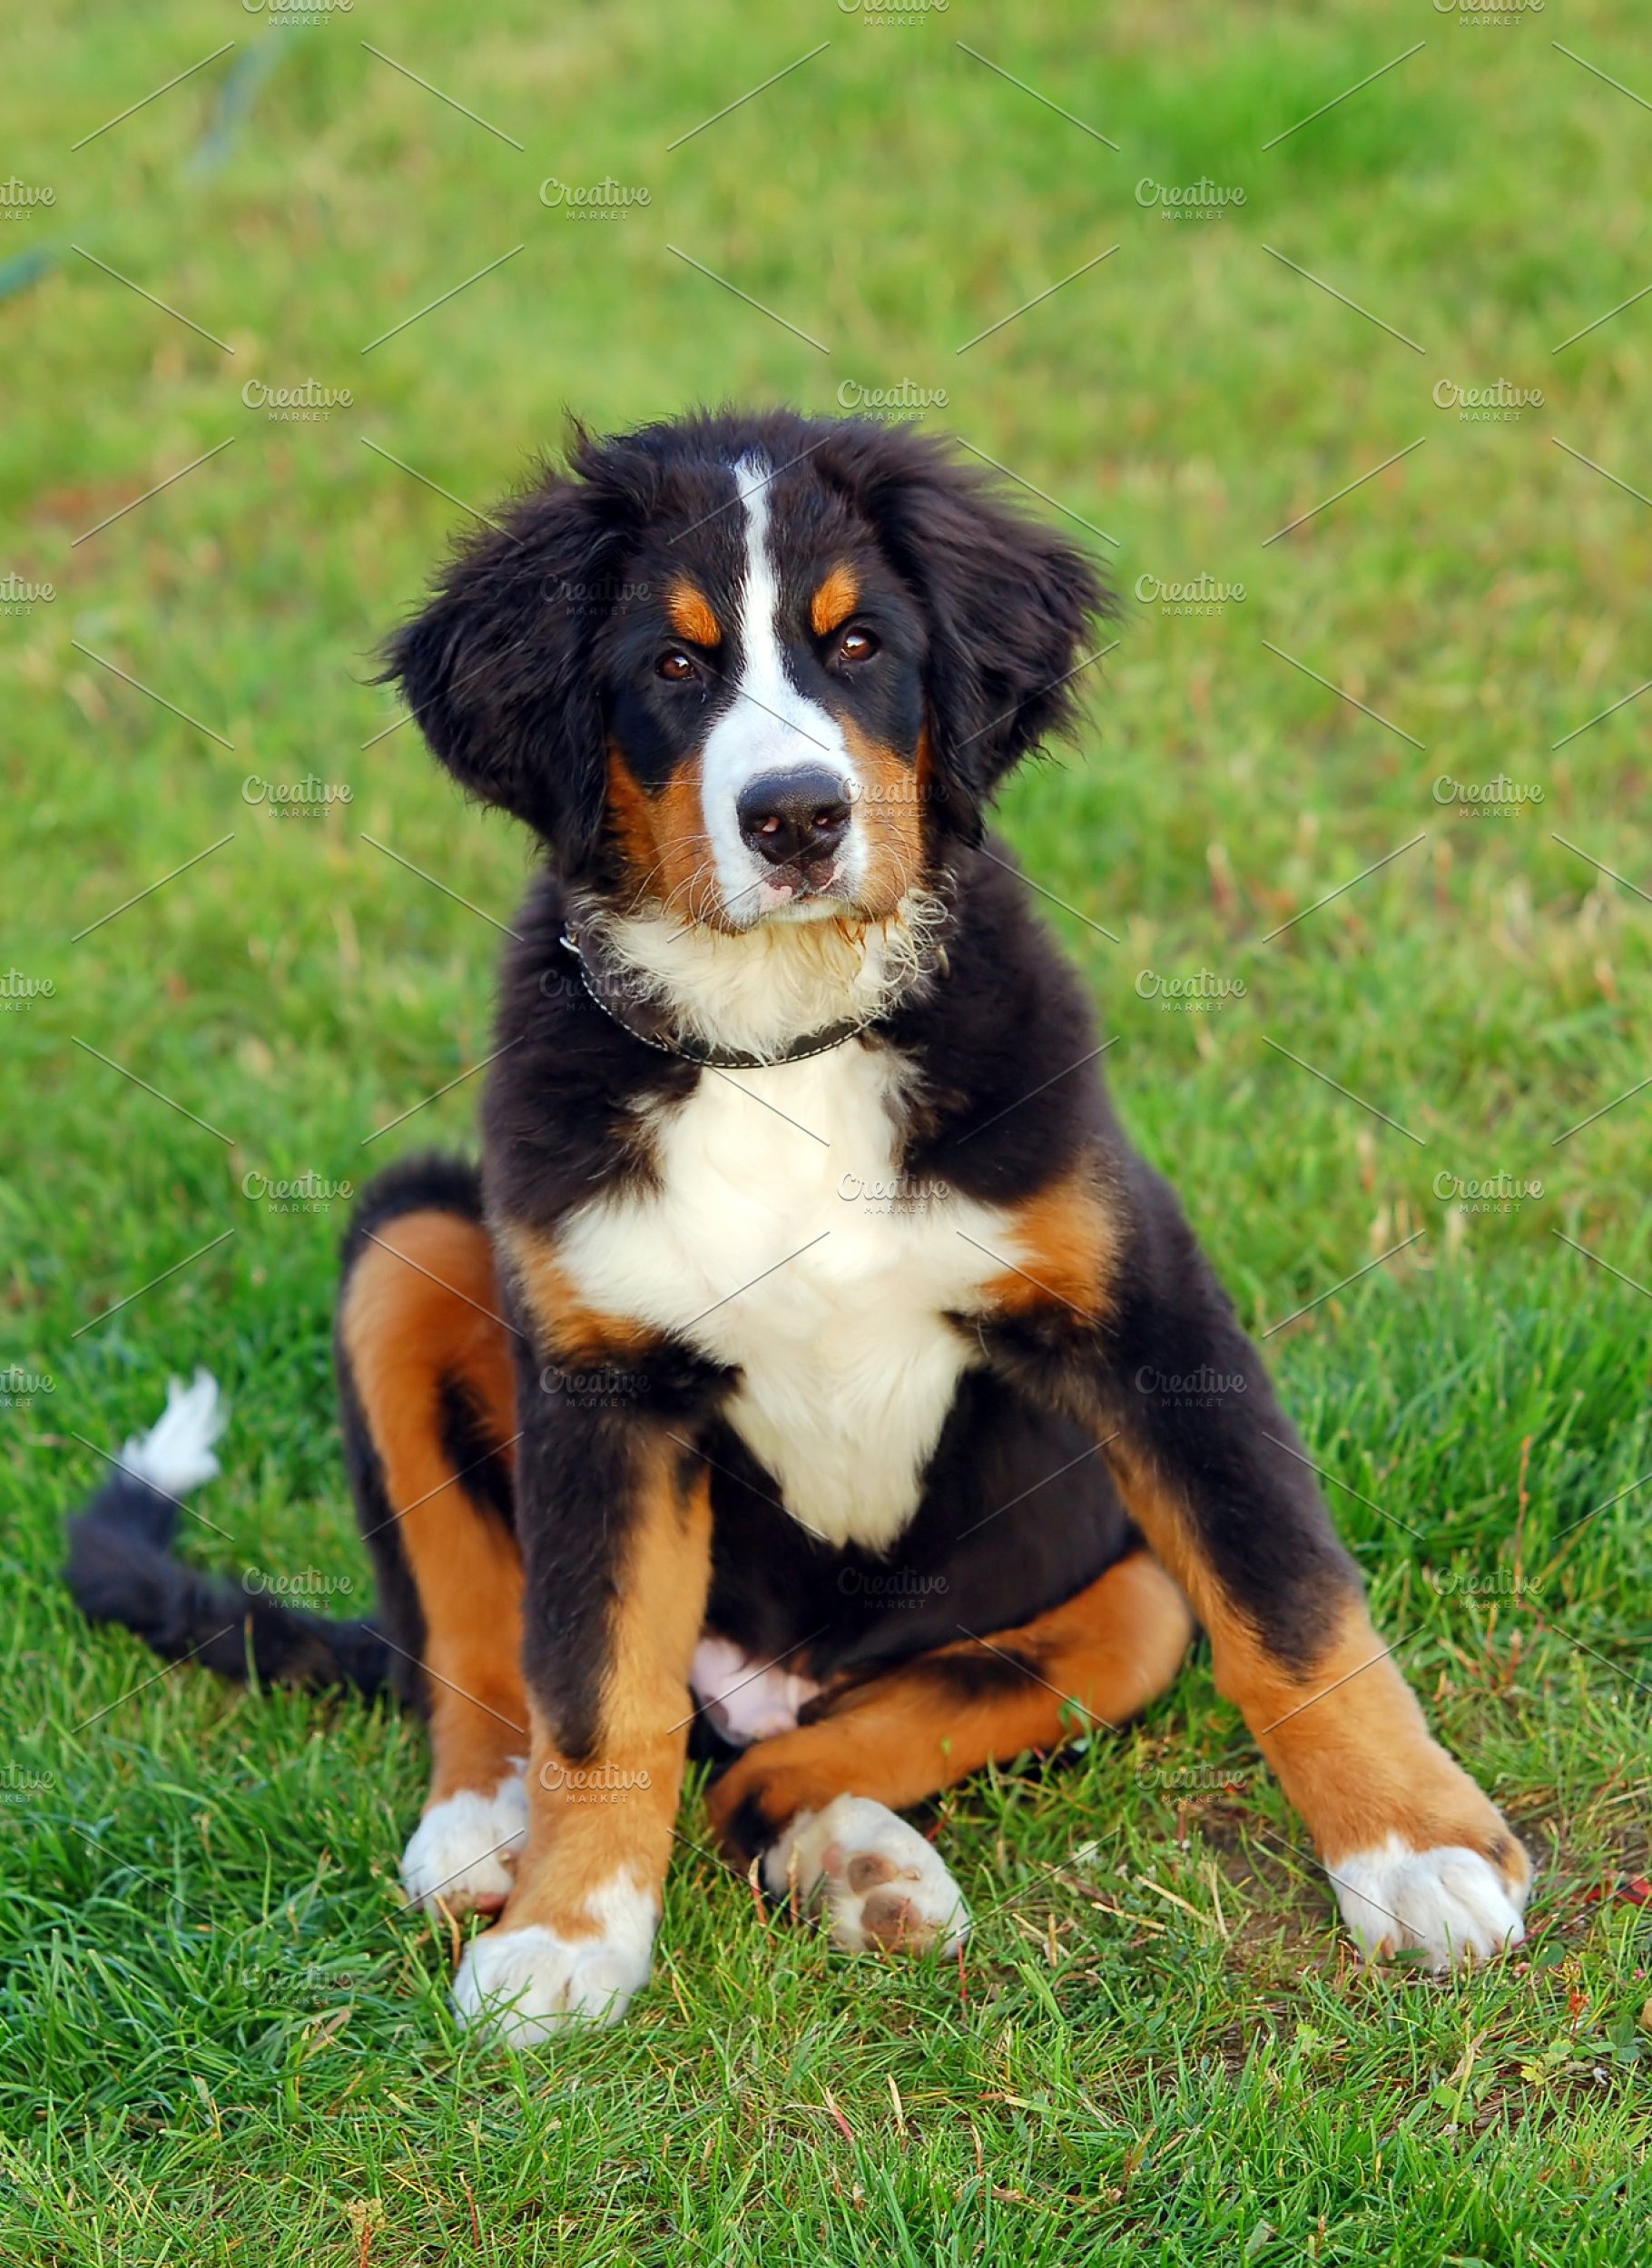 Puppy Bernese Mountain Dog For Sale In Northern Territory Australia